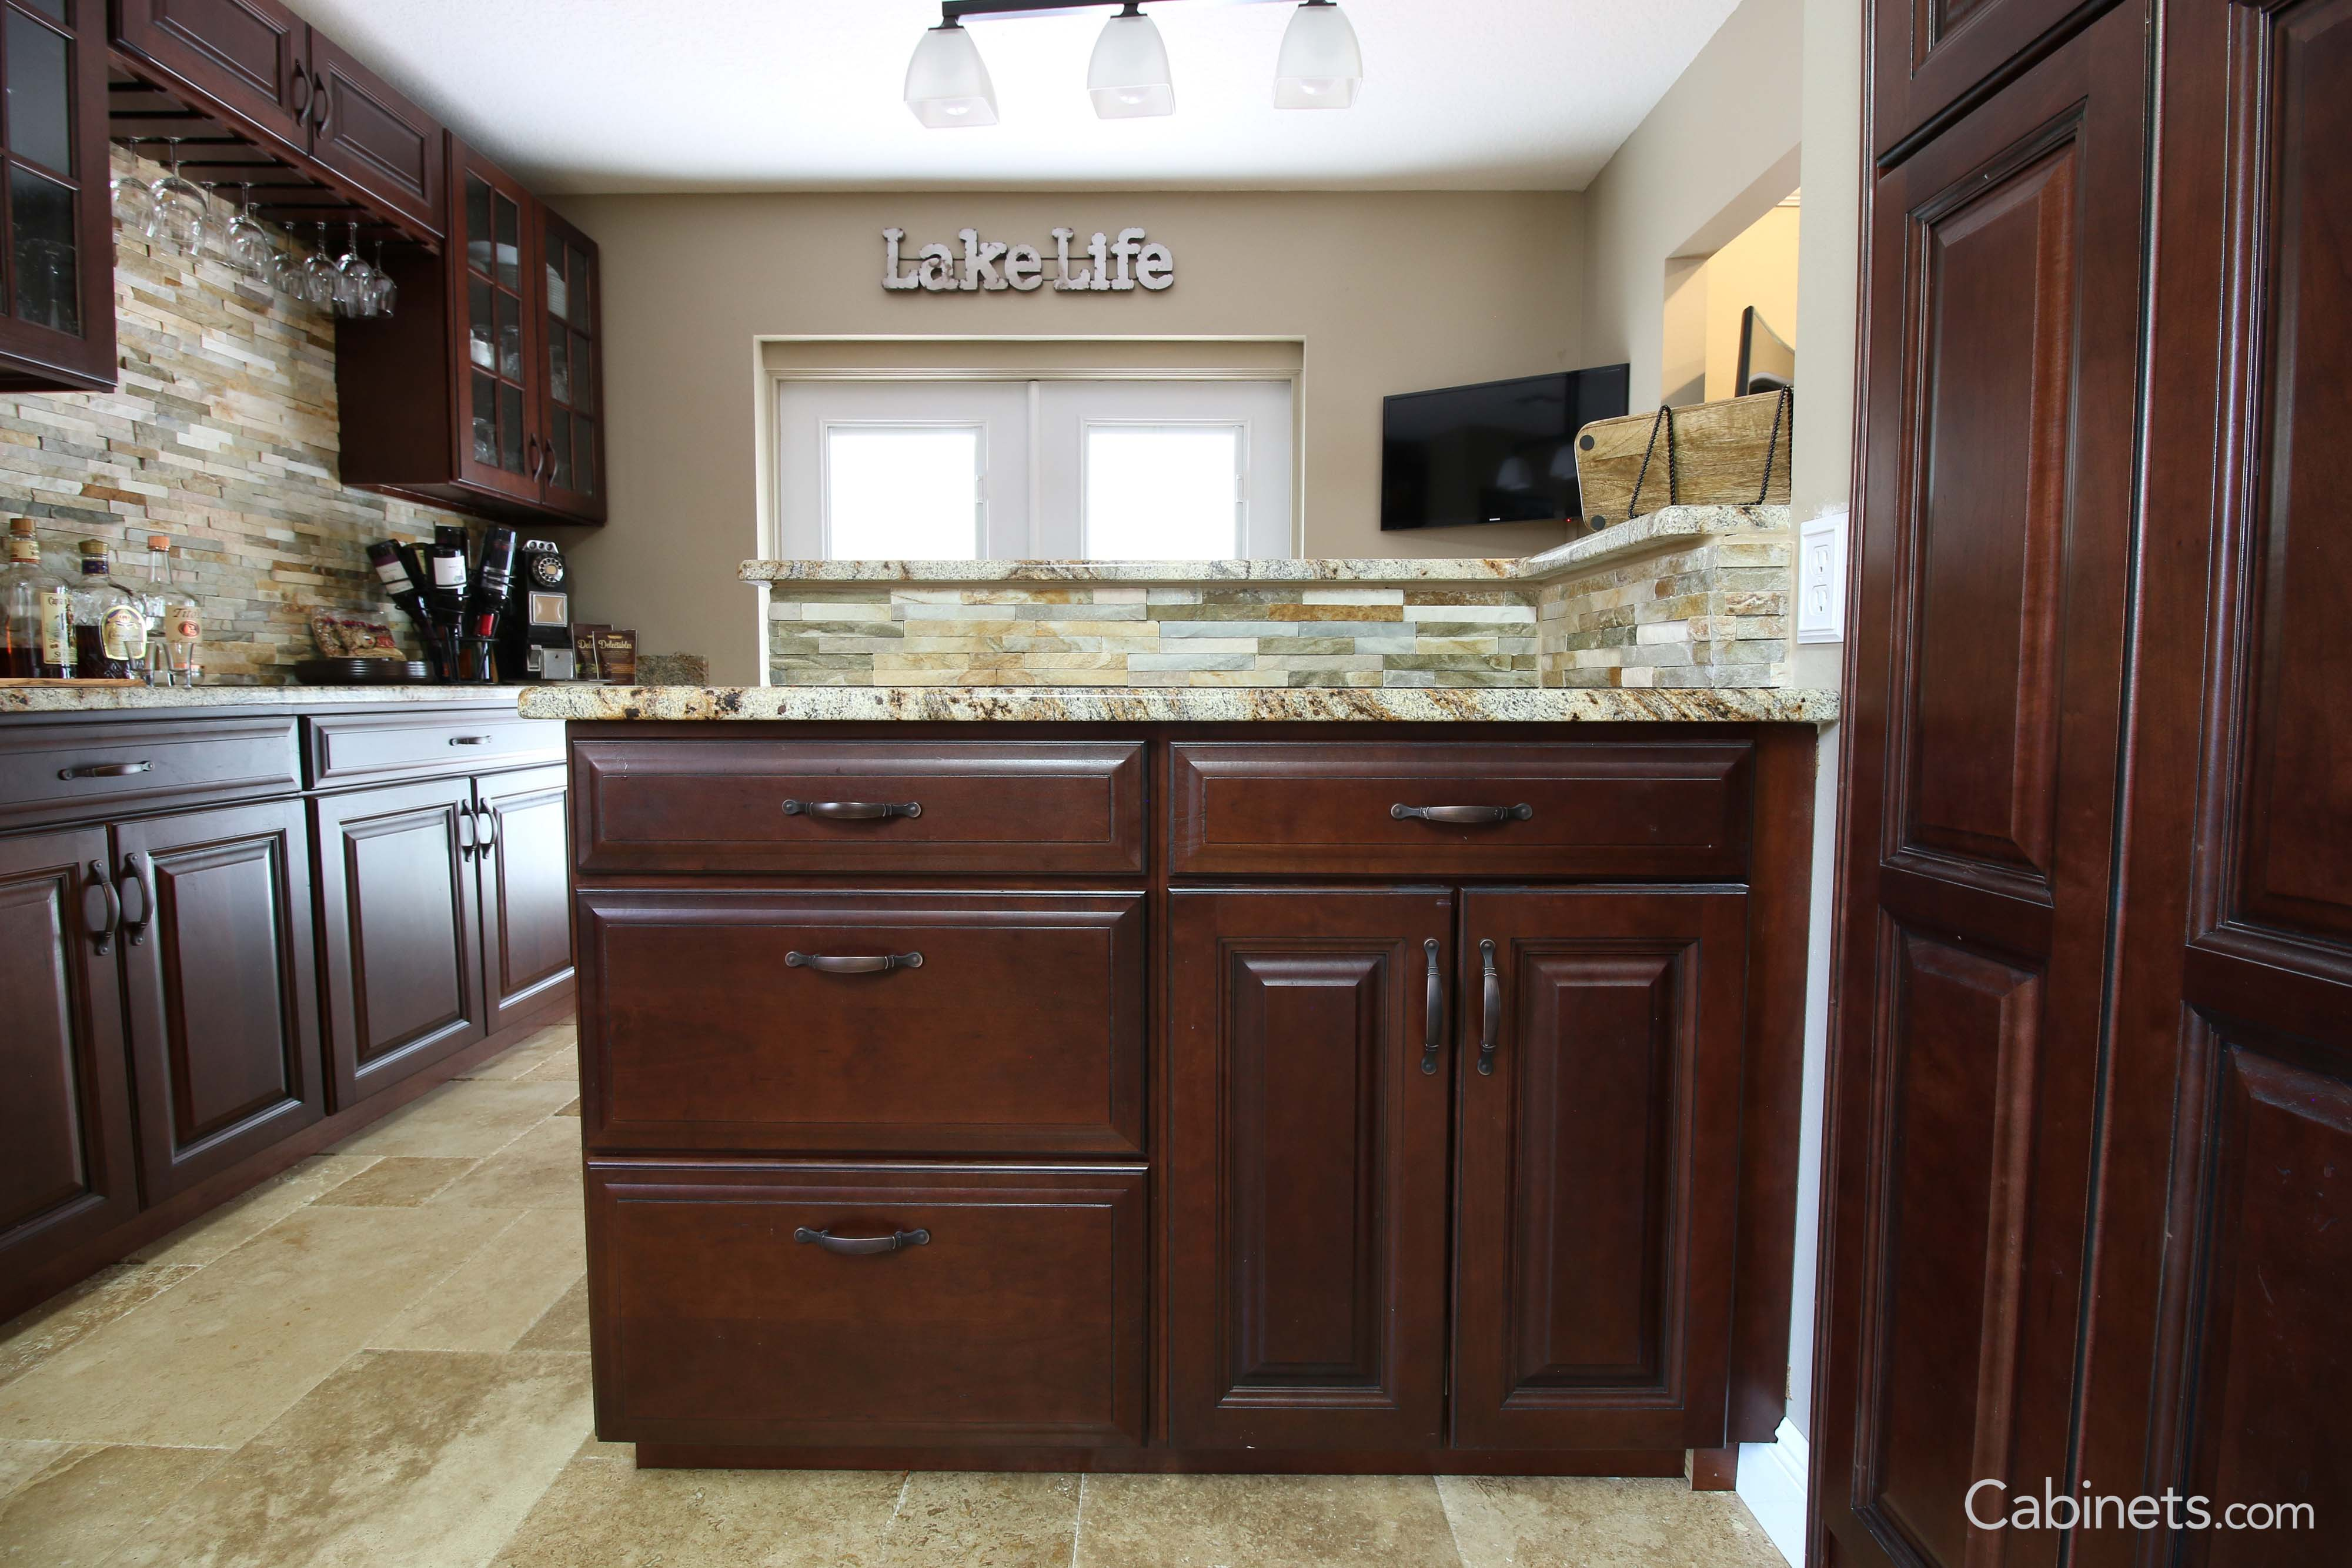 5 Tips for Selecting Kitchen Cabinets - Cabinets.com